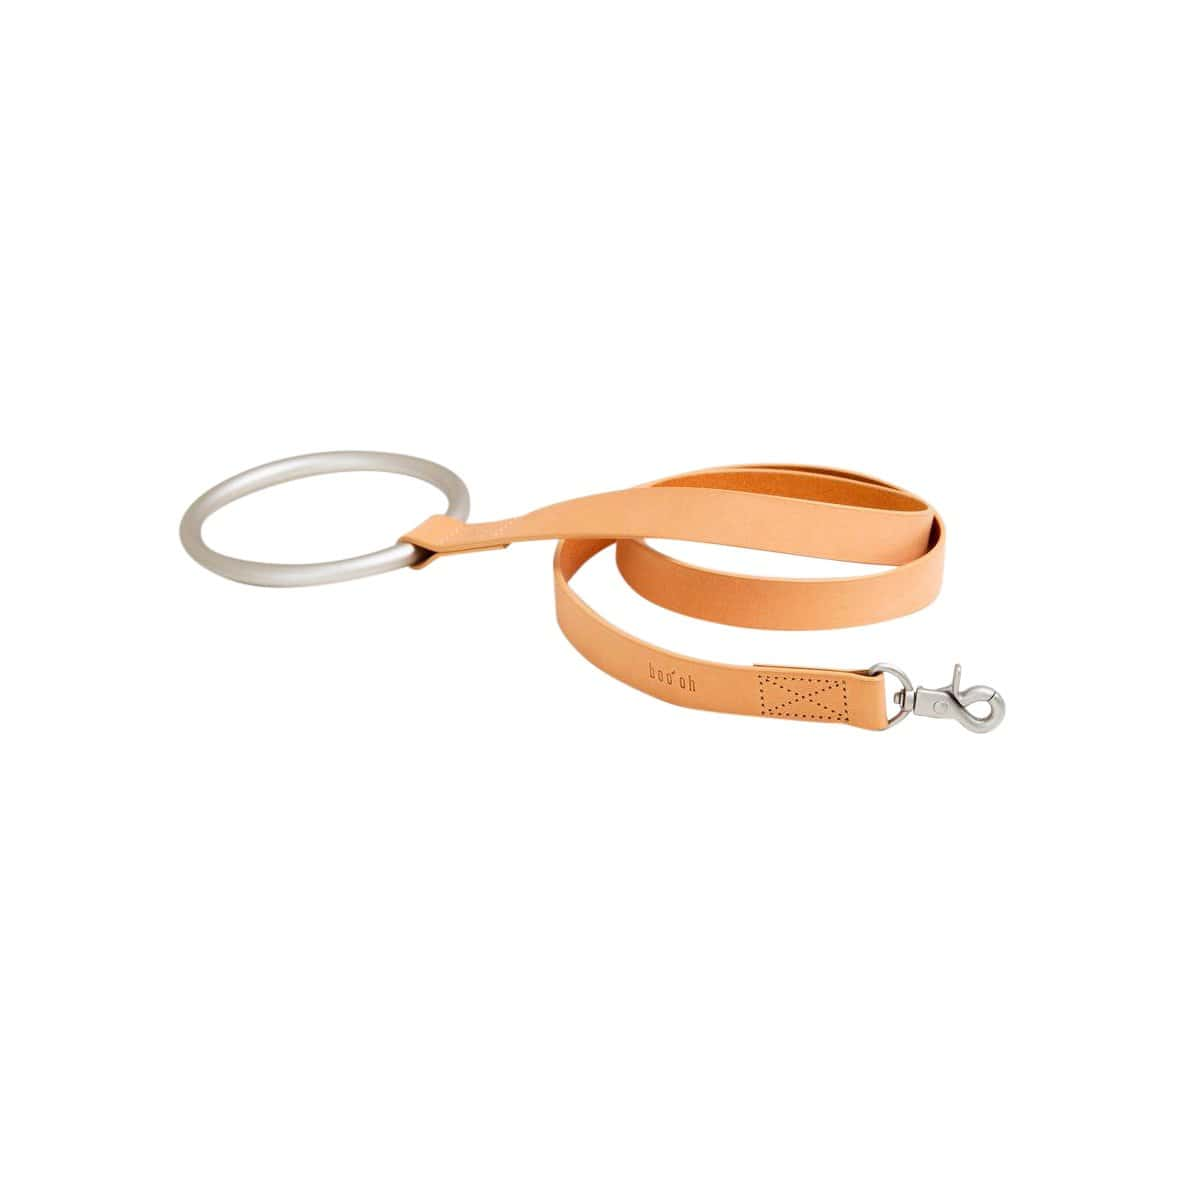 Boo Oh Leashes + Leads Tan Lumi Silver and Tan Leather Leash